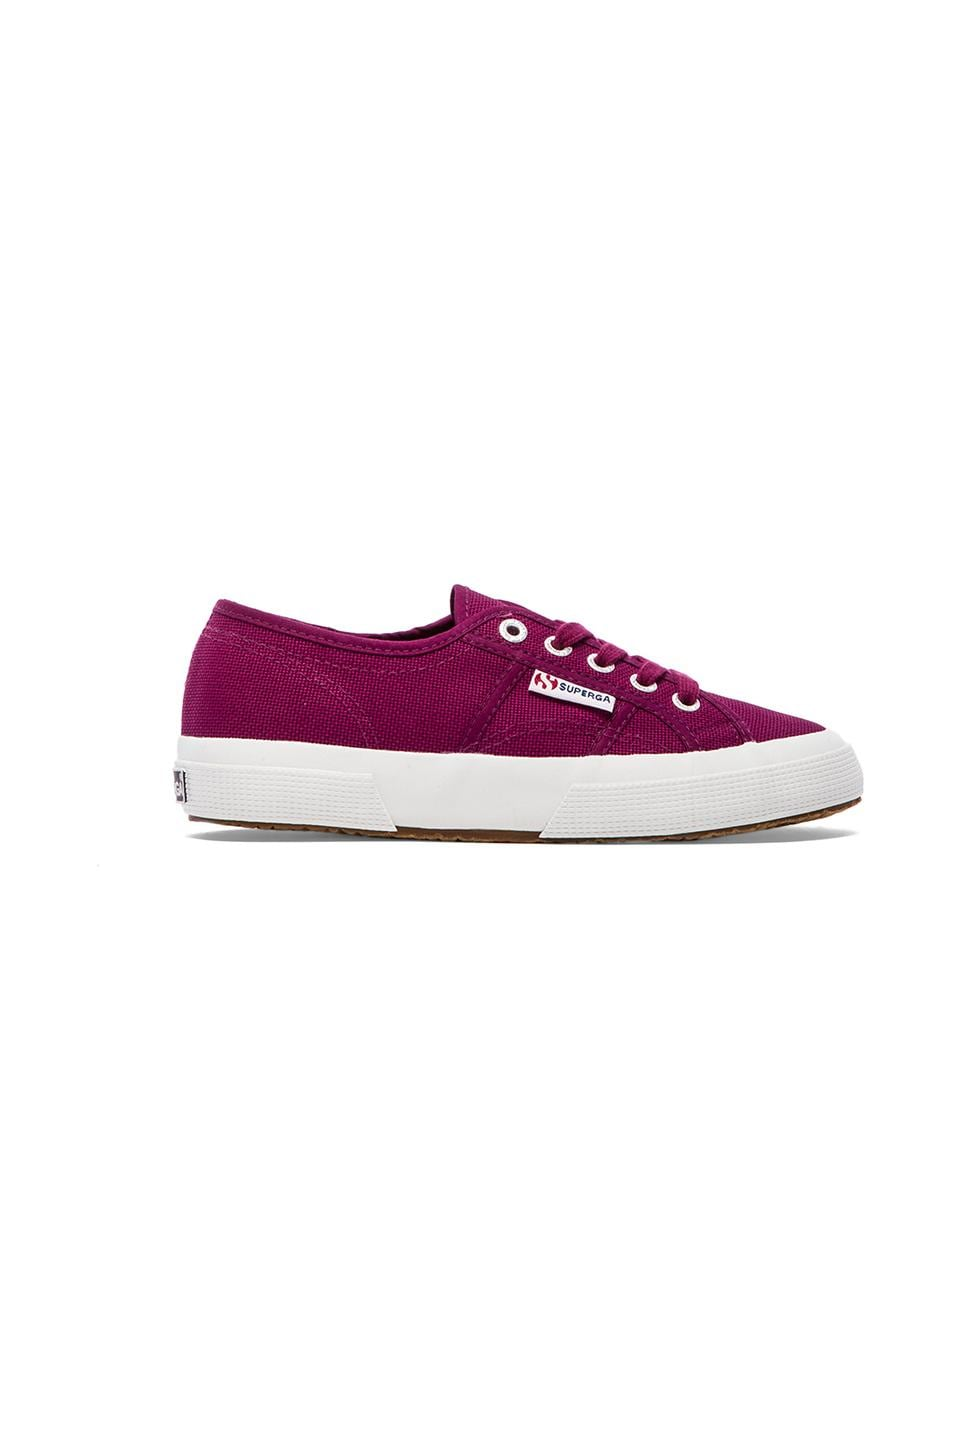 Superga Cotu Classic Sneakers in Beet